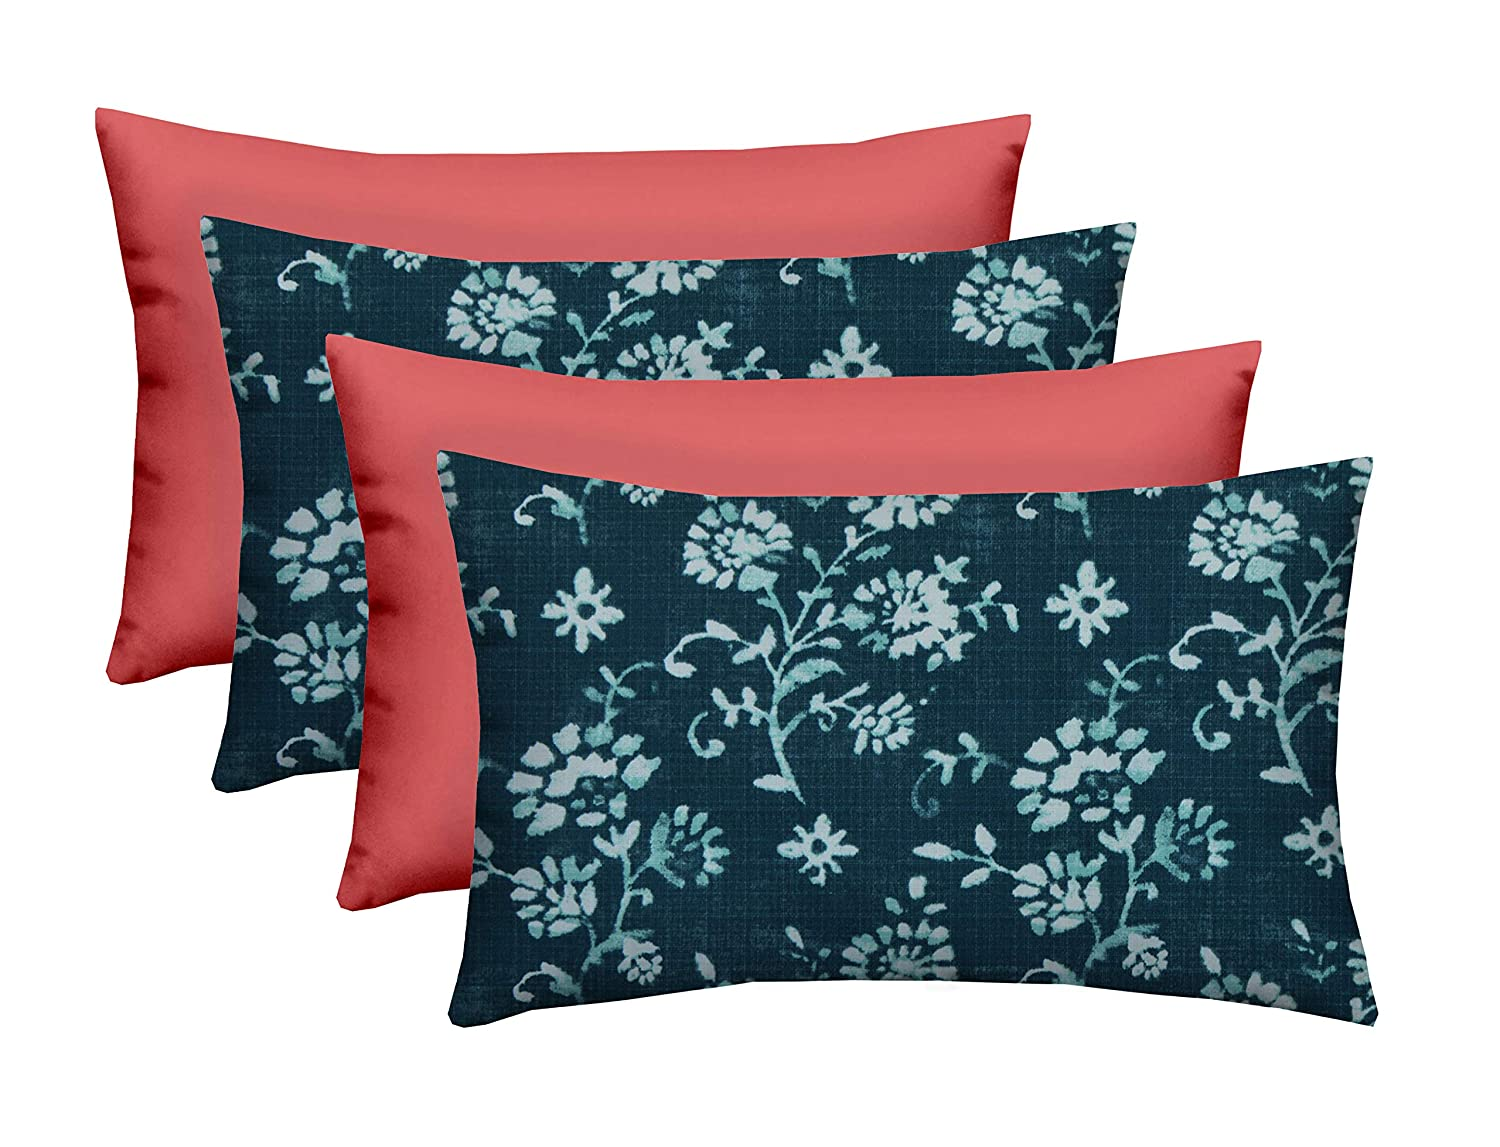 """Set of 4 - Indoor/Outdoor Rectangle Lumbar Decorative 20"""" x 12"""" Throw/Toss Pillows - Black and White Abstract Flower & Choose Color (Lenore Zaffre Navy Abstract Floral & Peony Pink)"""